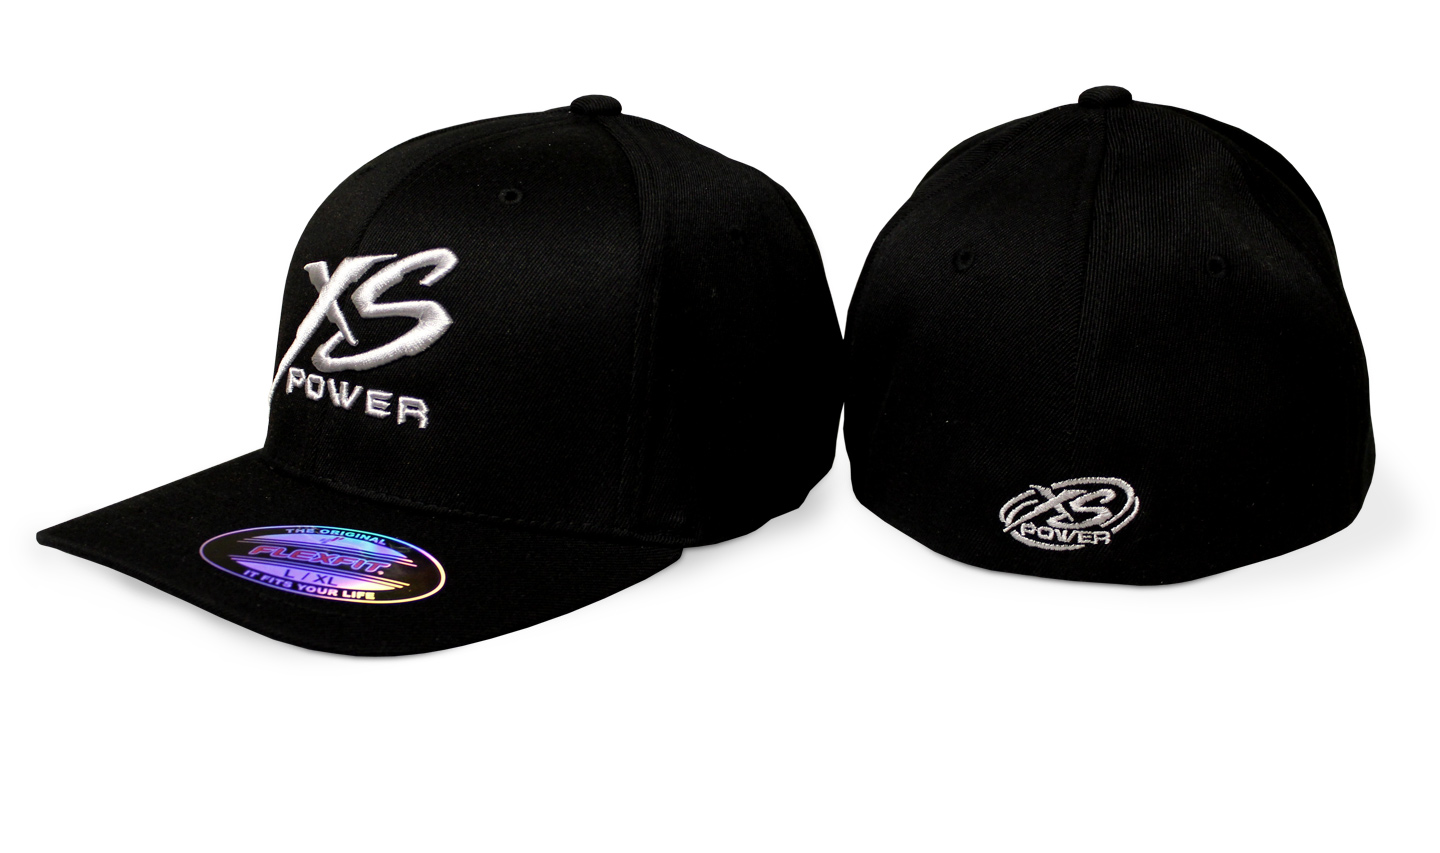 2baf1485d7 XS Flexfit Hat - XS Power